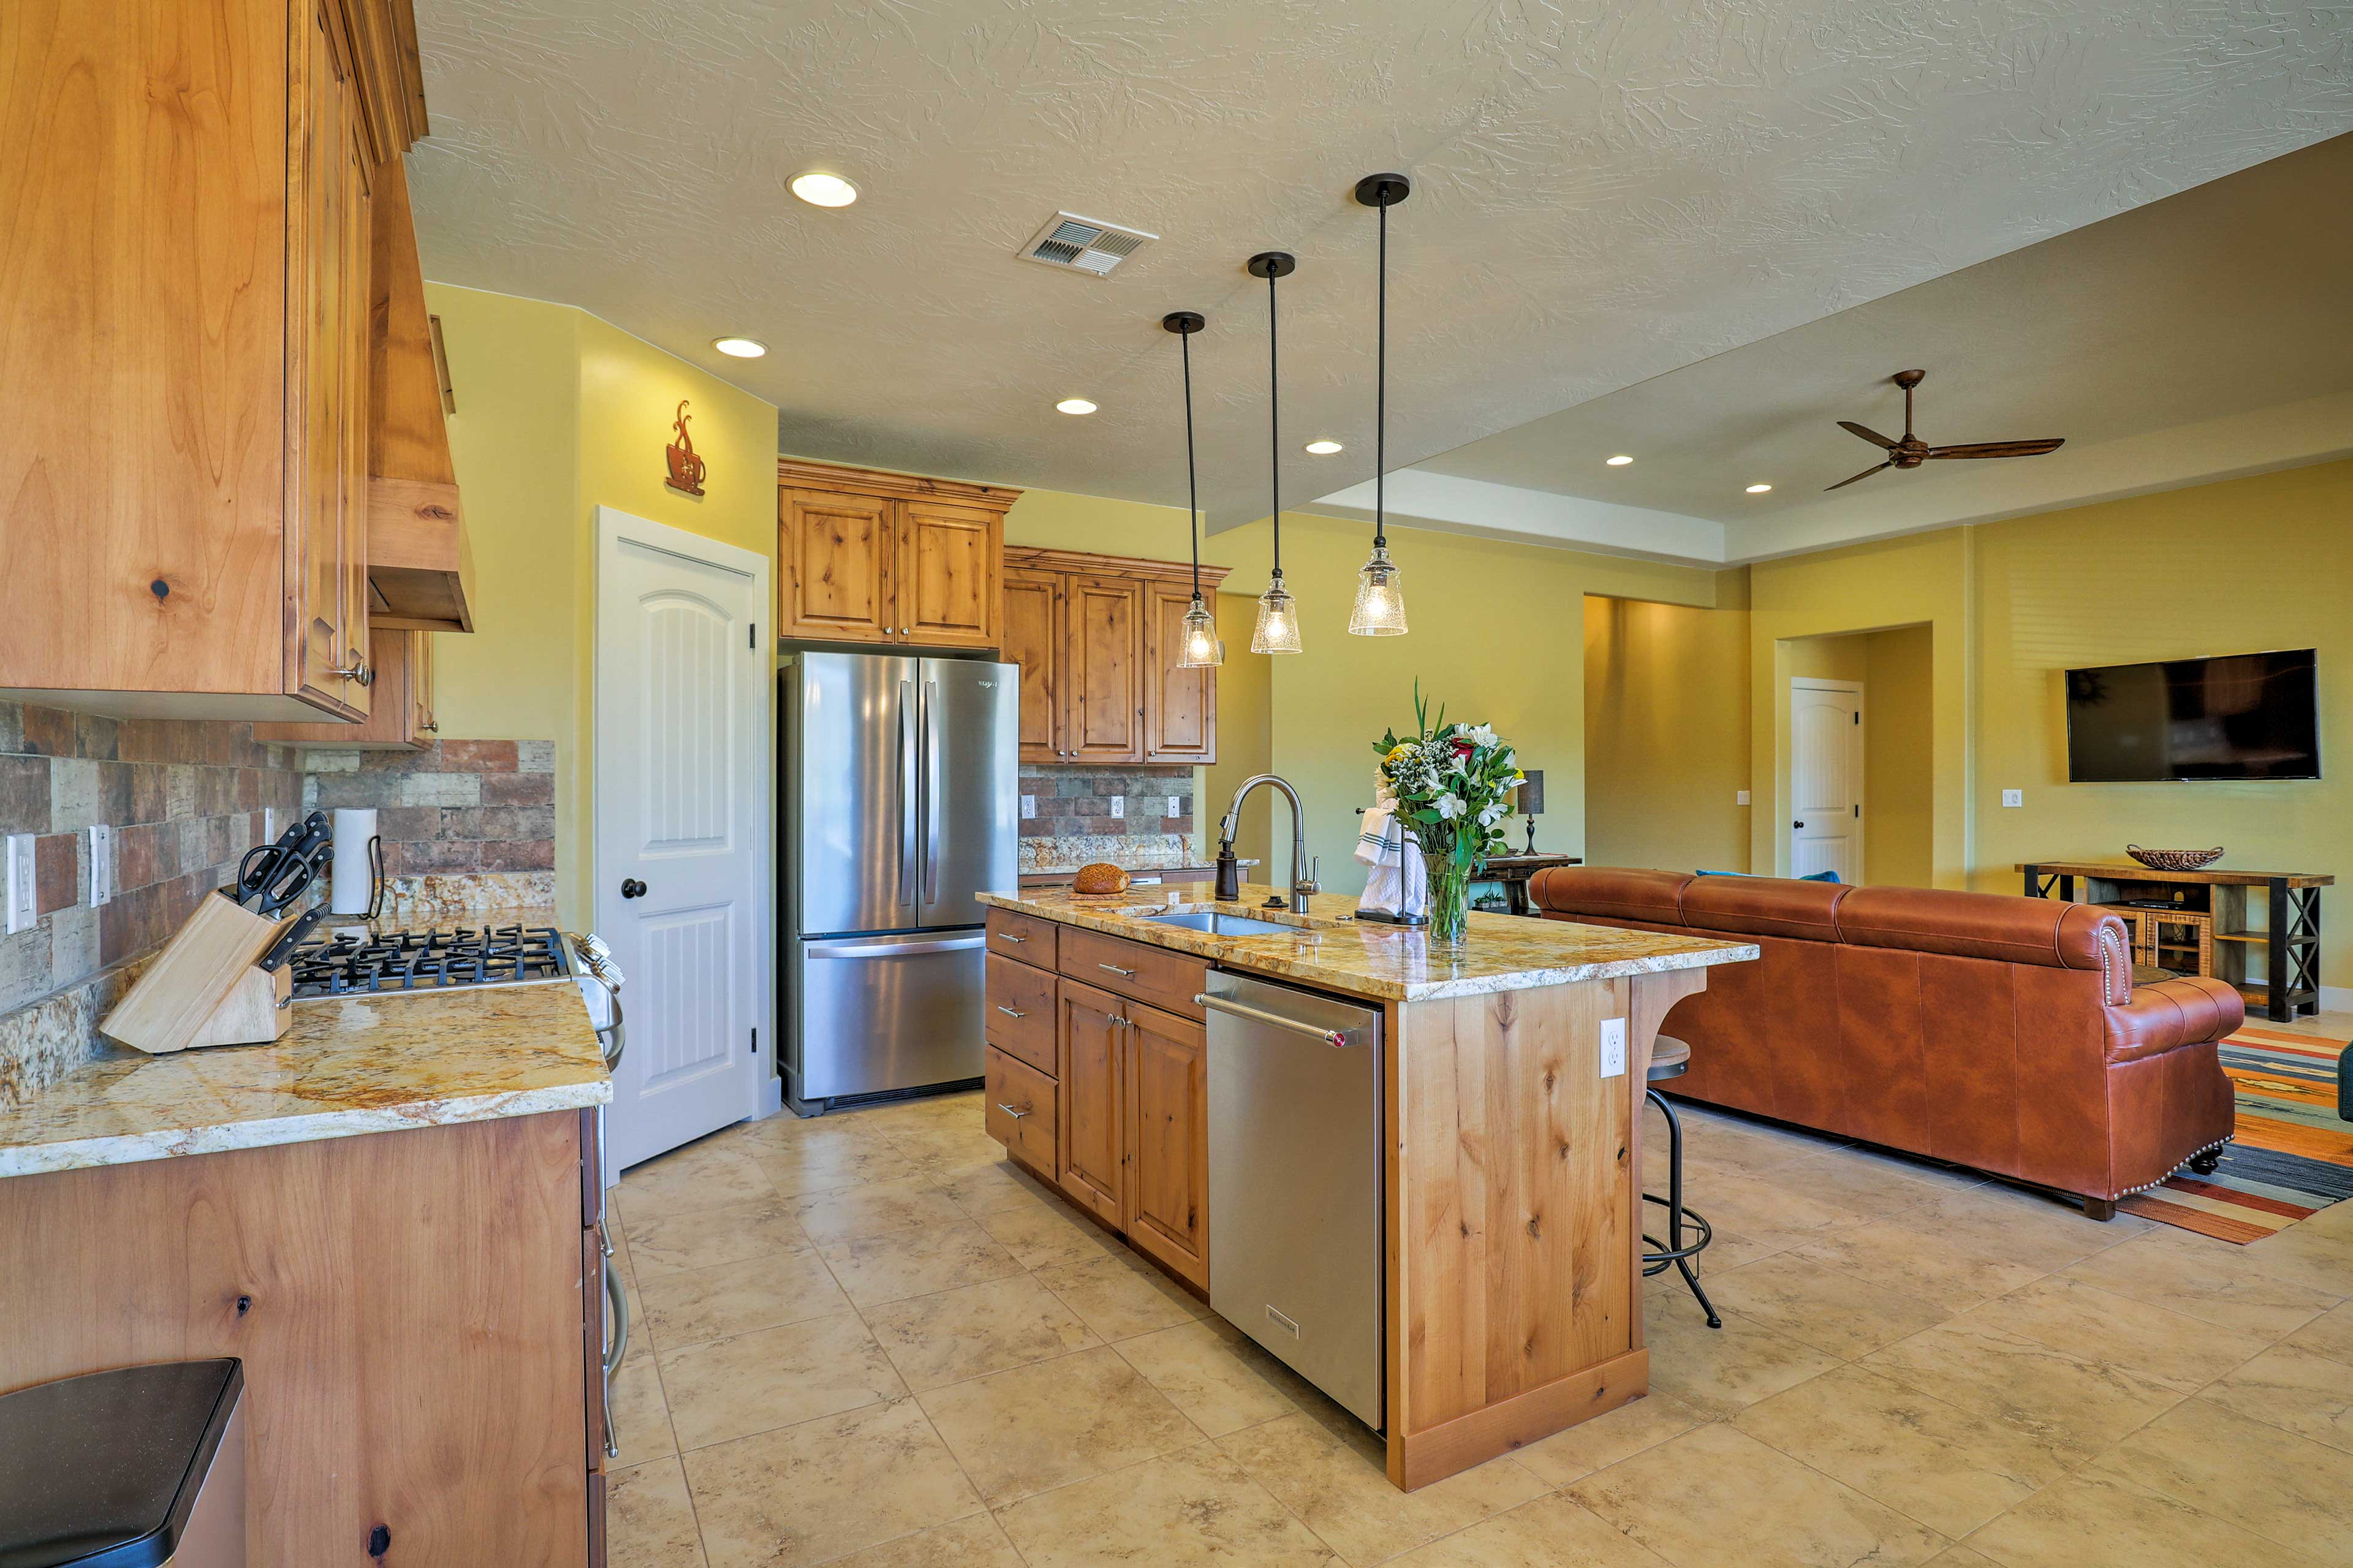 The kitchen has everything you need!